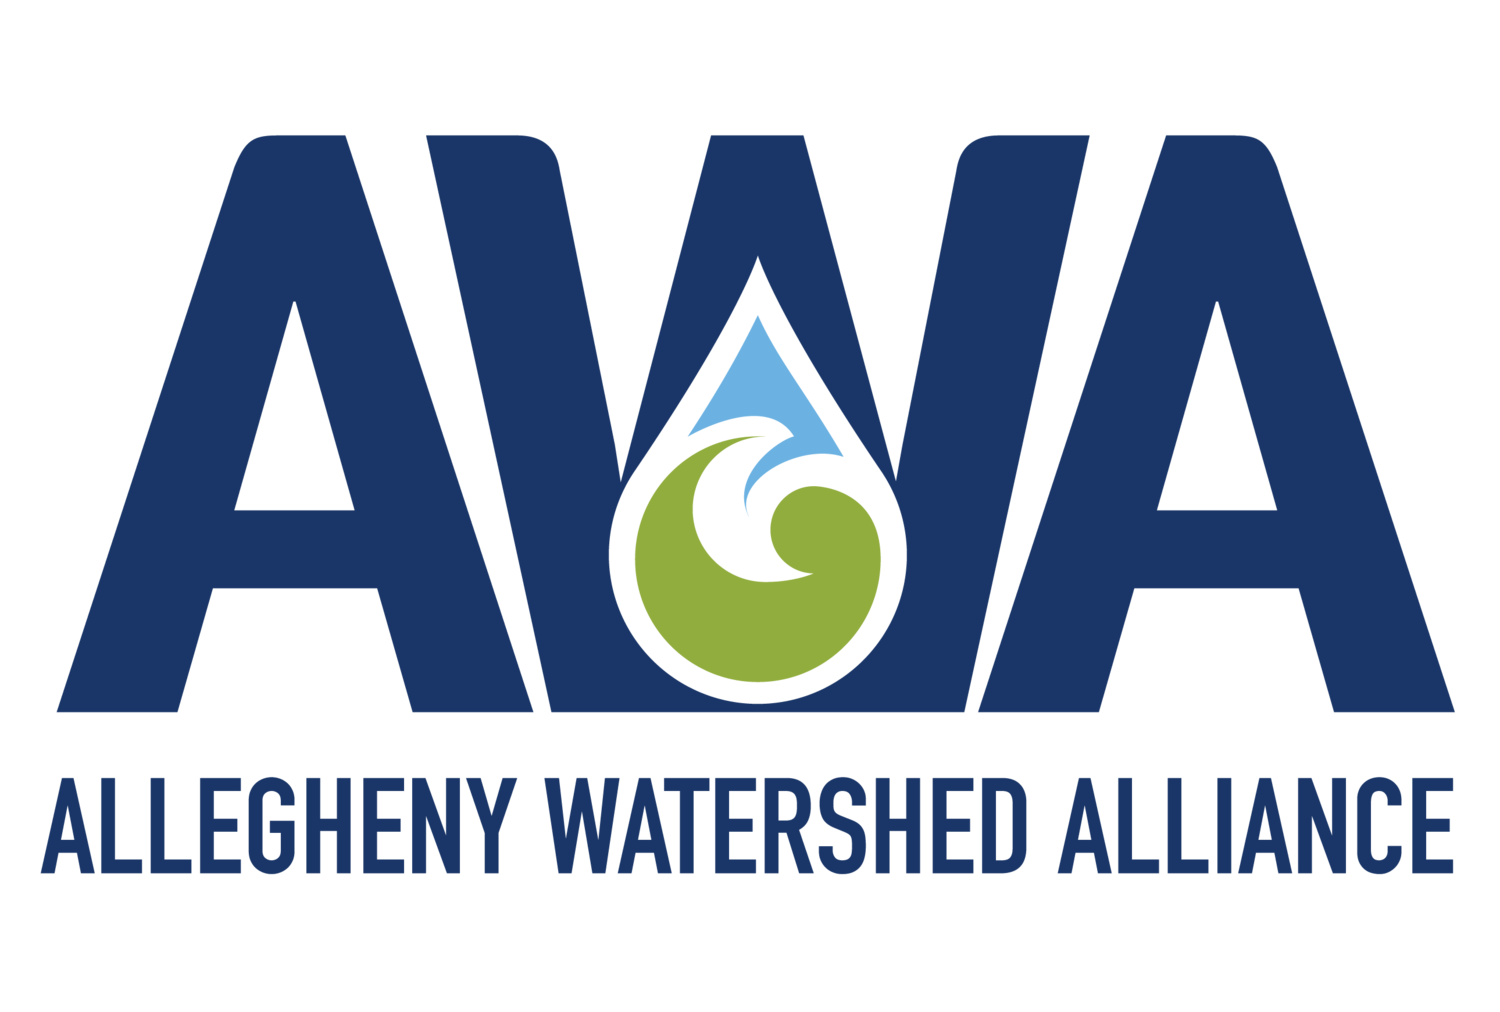 Allegheny Watershed Alliance